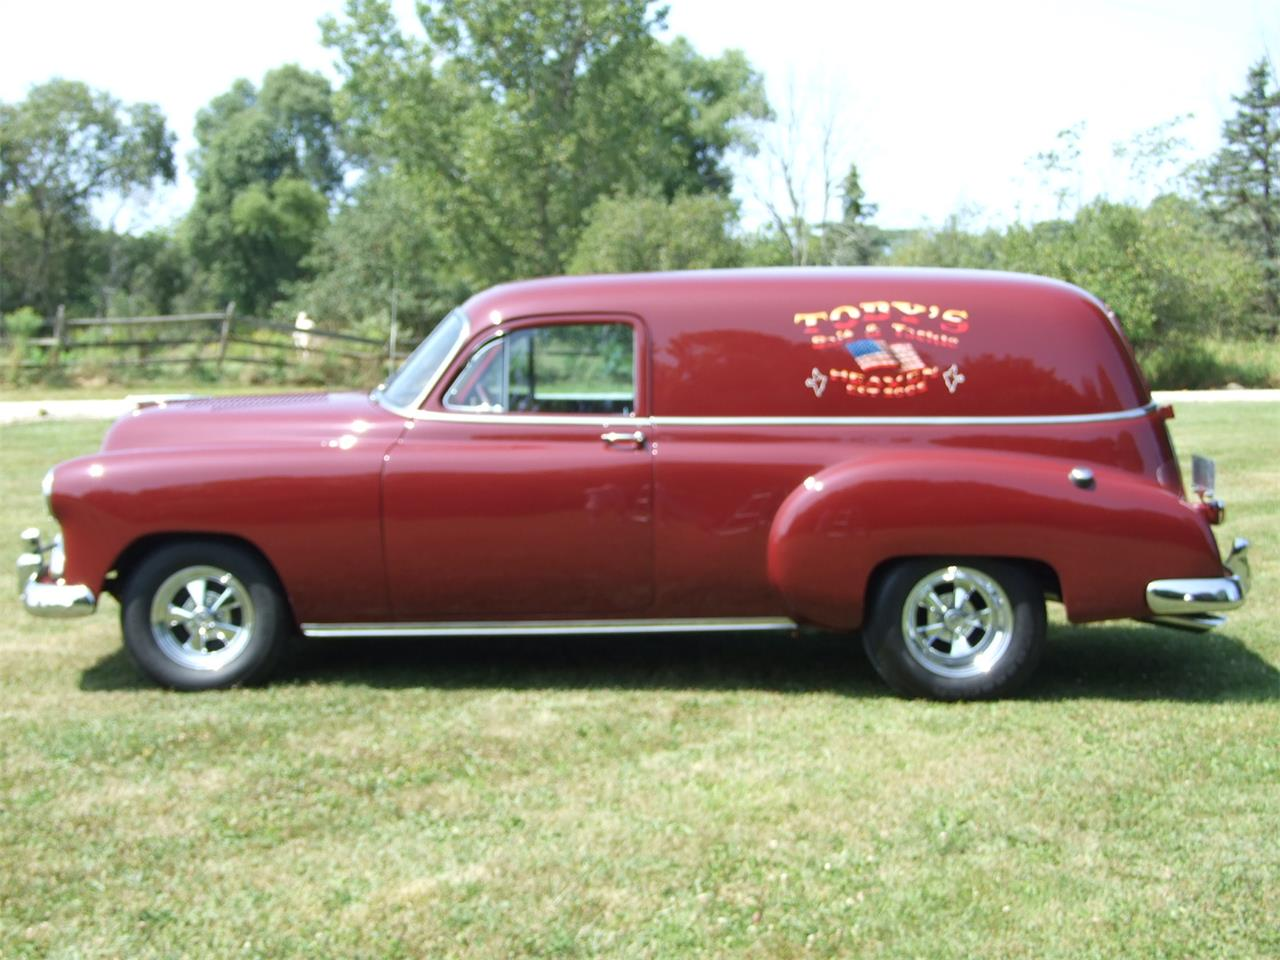 Large Picture of '52 Chevrolet Sedan Delivery Offered by Auto Connection, Inc. - LYA2